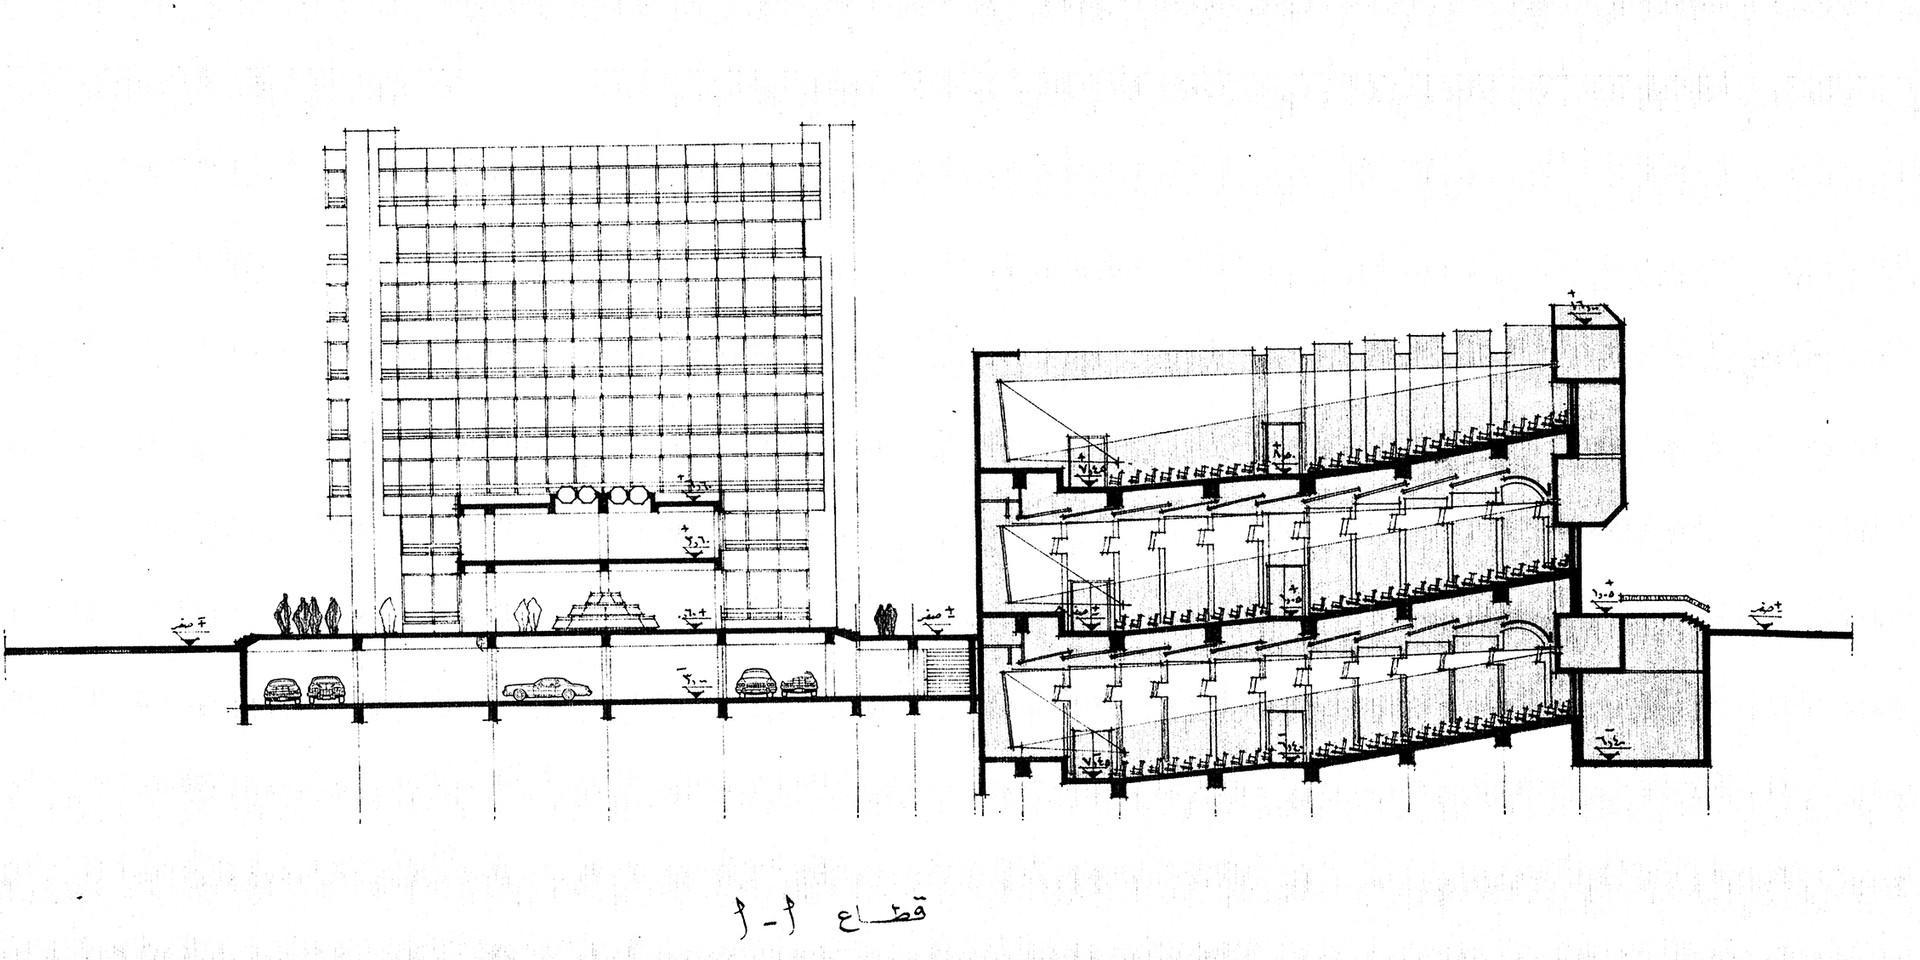 Normandy Shopping Center Section / Elevation